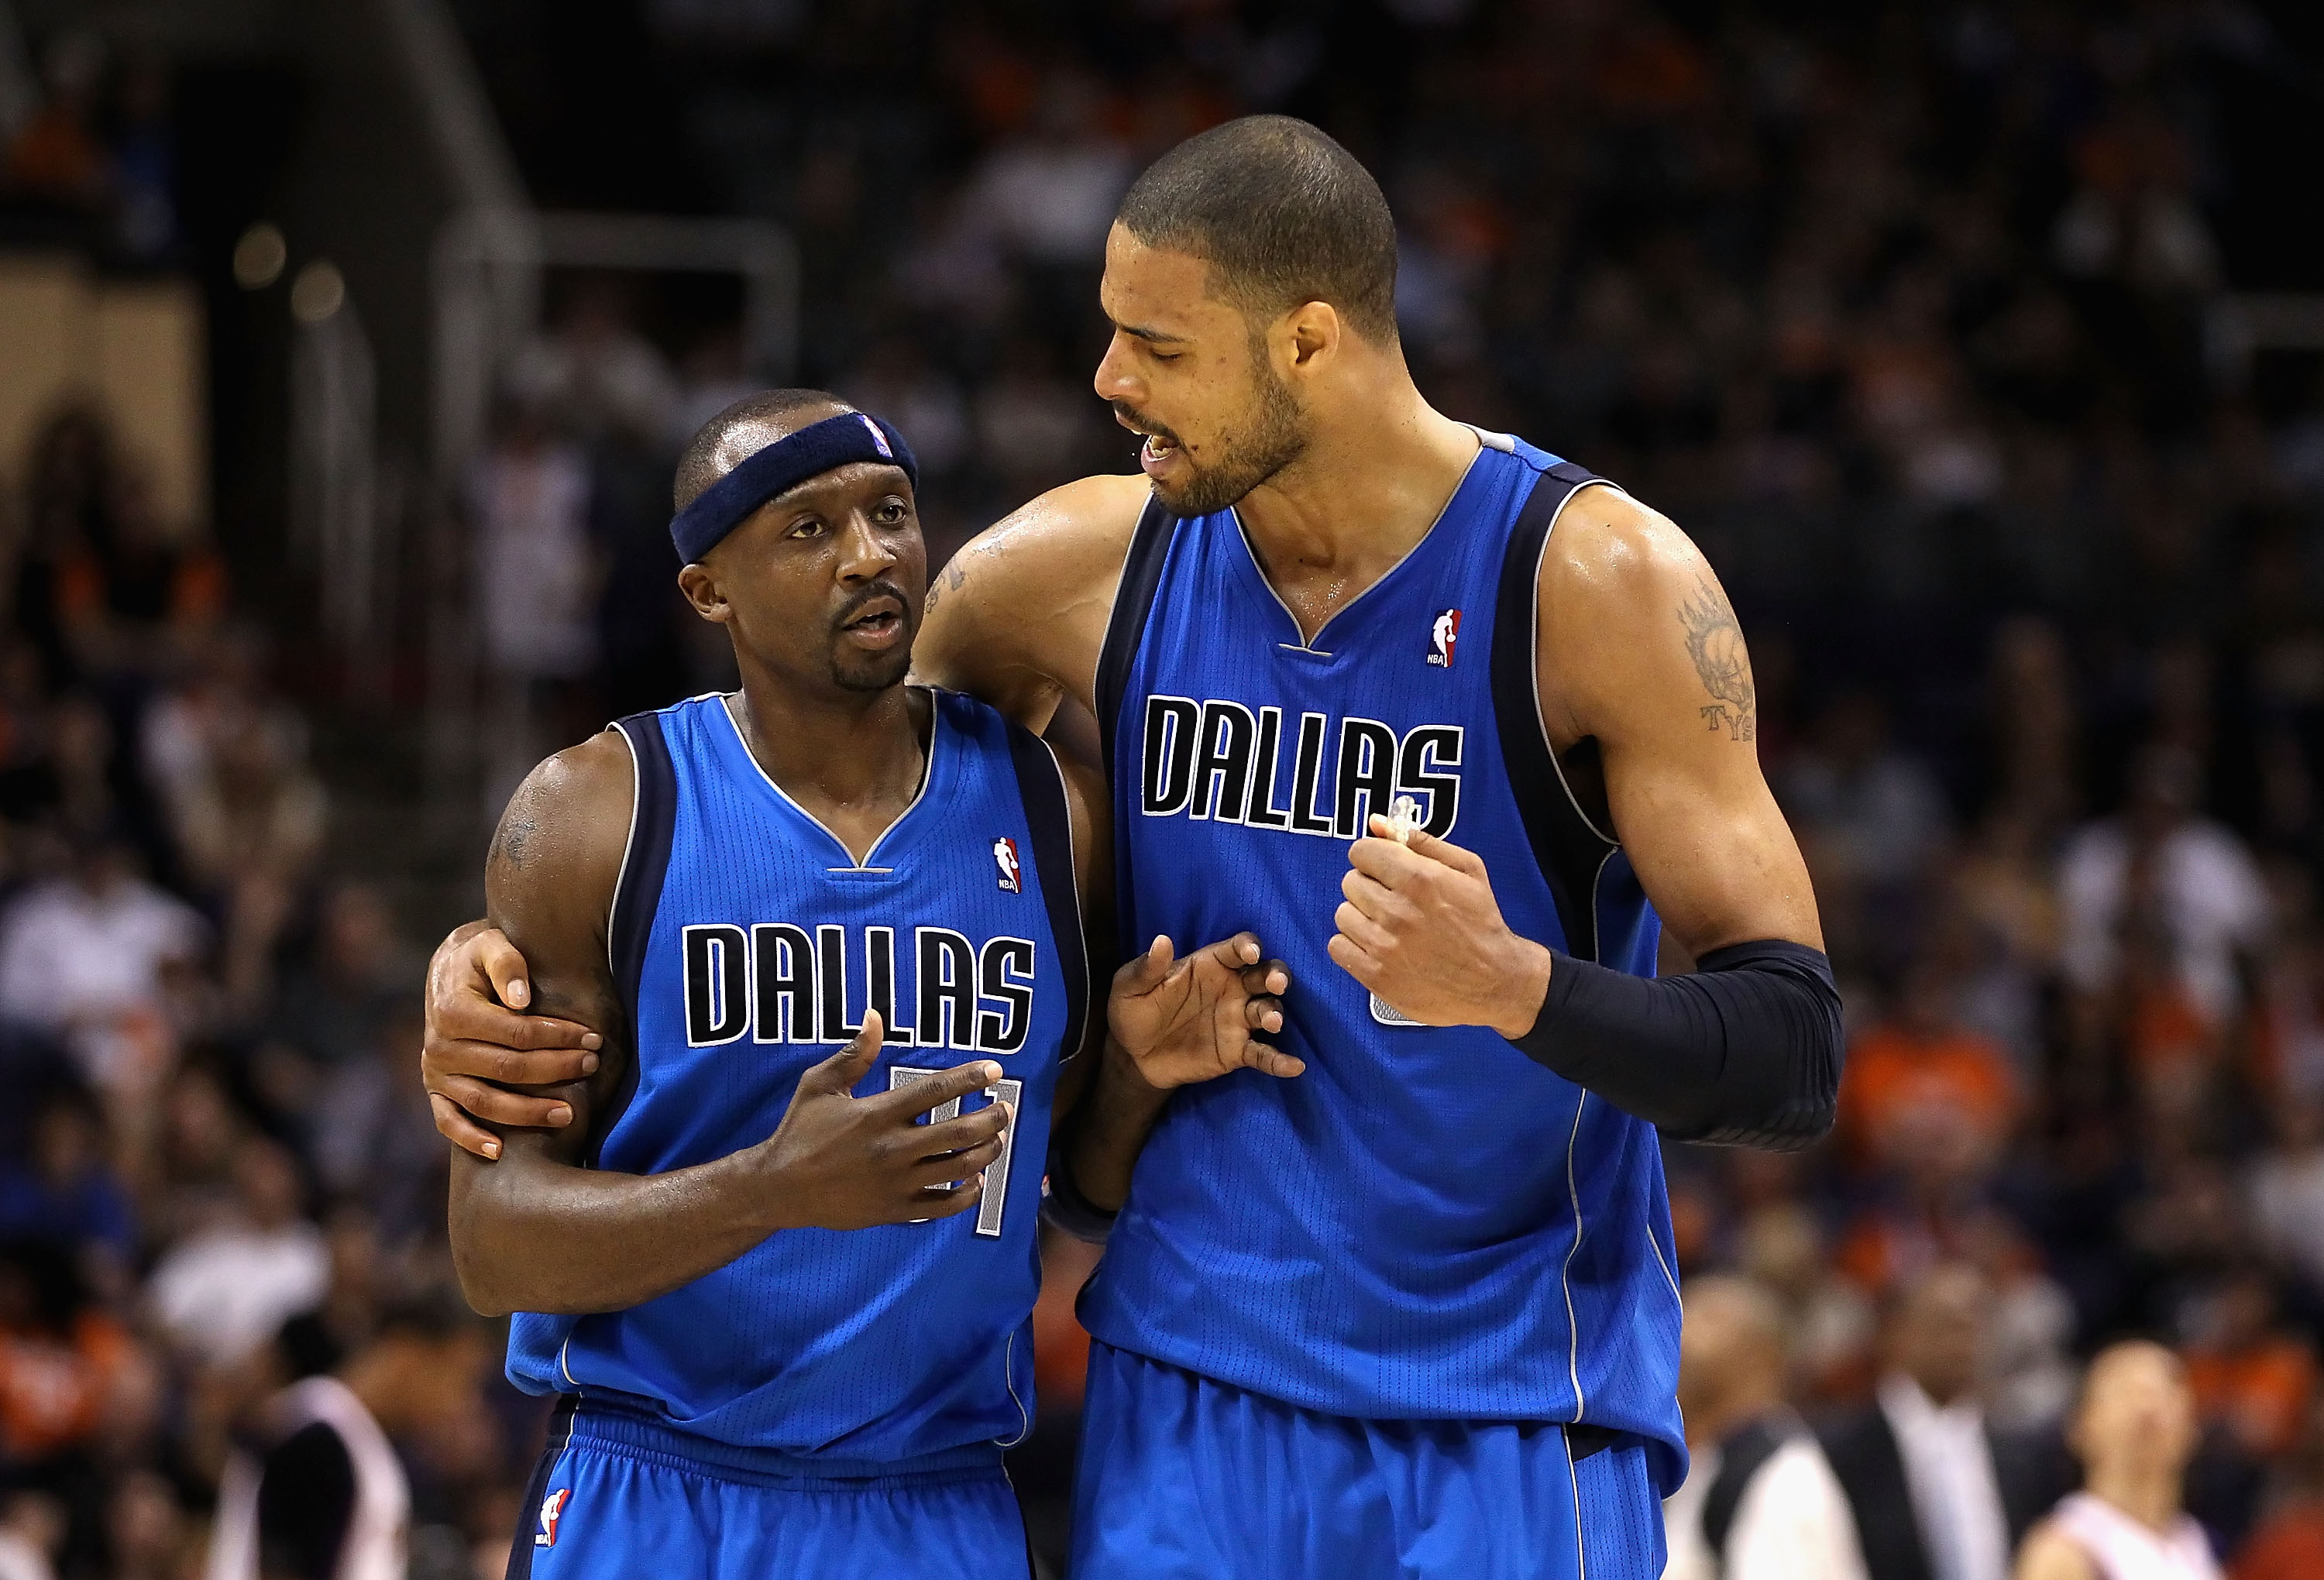 PHOENIX, AZ - MARCH 27:  Jason Terry #31 and Tyson Chandler #6 of the Dallas Mavericks react after scoring against the Phoenix Suns during the NBA game at US Airways Center on March 27, 2011 in Phoenix, Arizona. The Mavericks defeated the Suns 91-83. NOTE